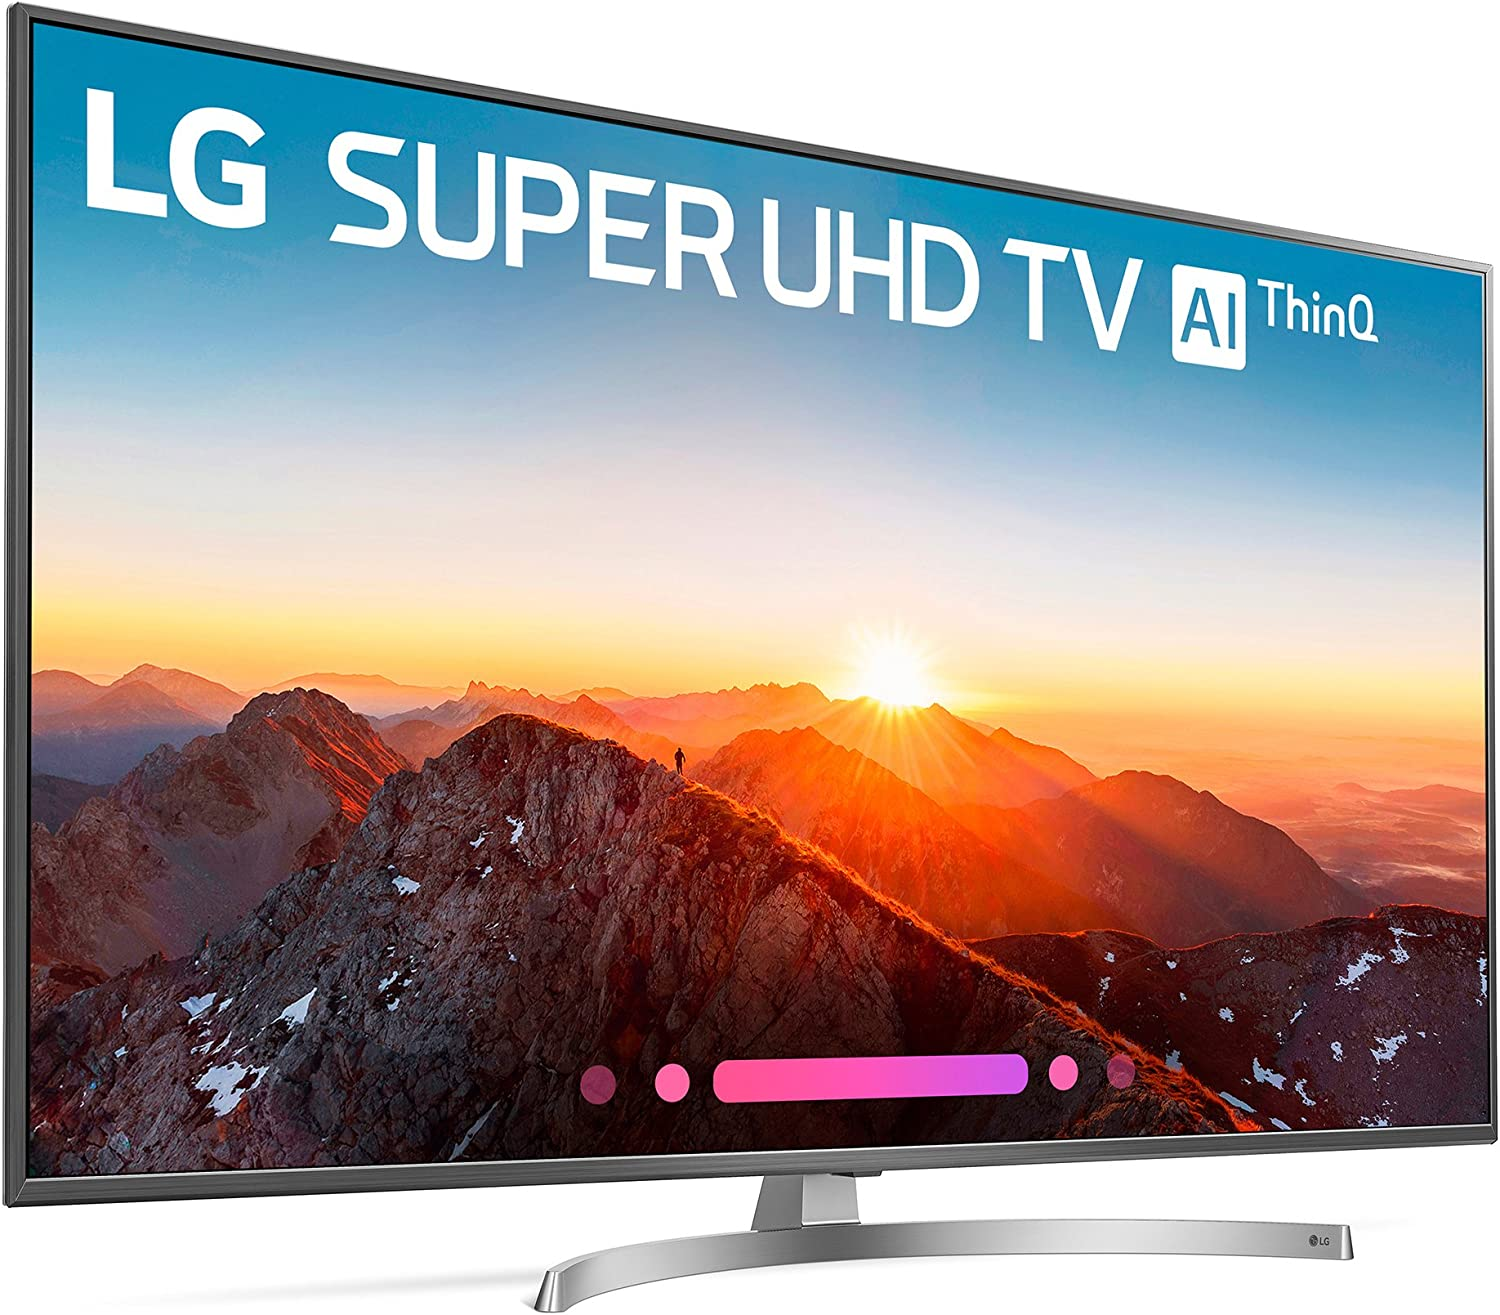 Amazon.com: LG Electronics 65SK8000 65-Inch 4K Ultra HD Smart LED ...